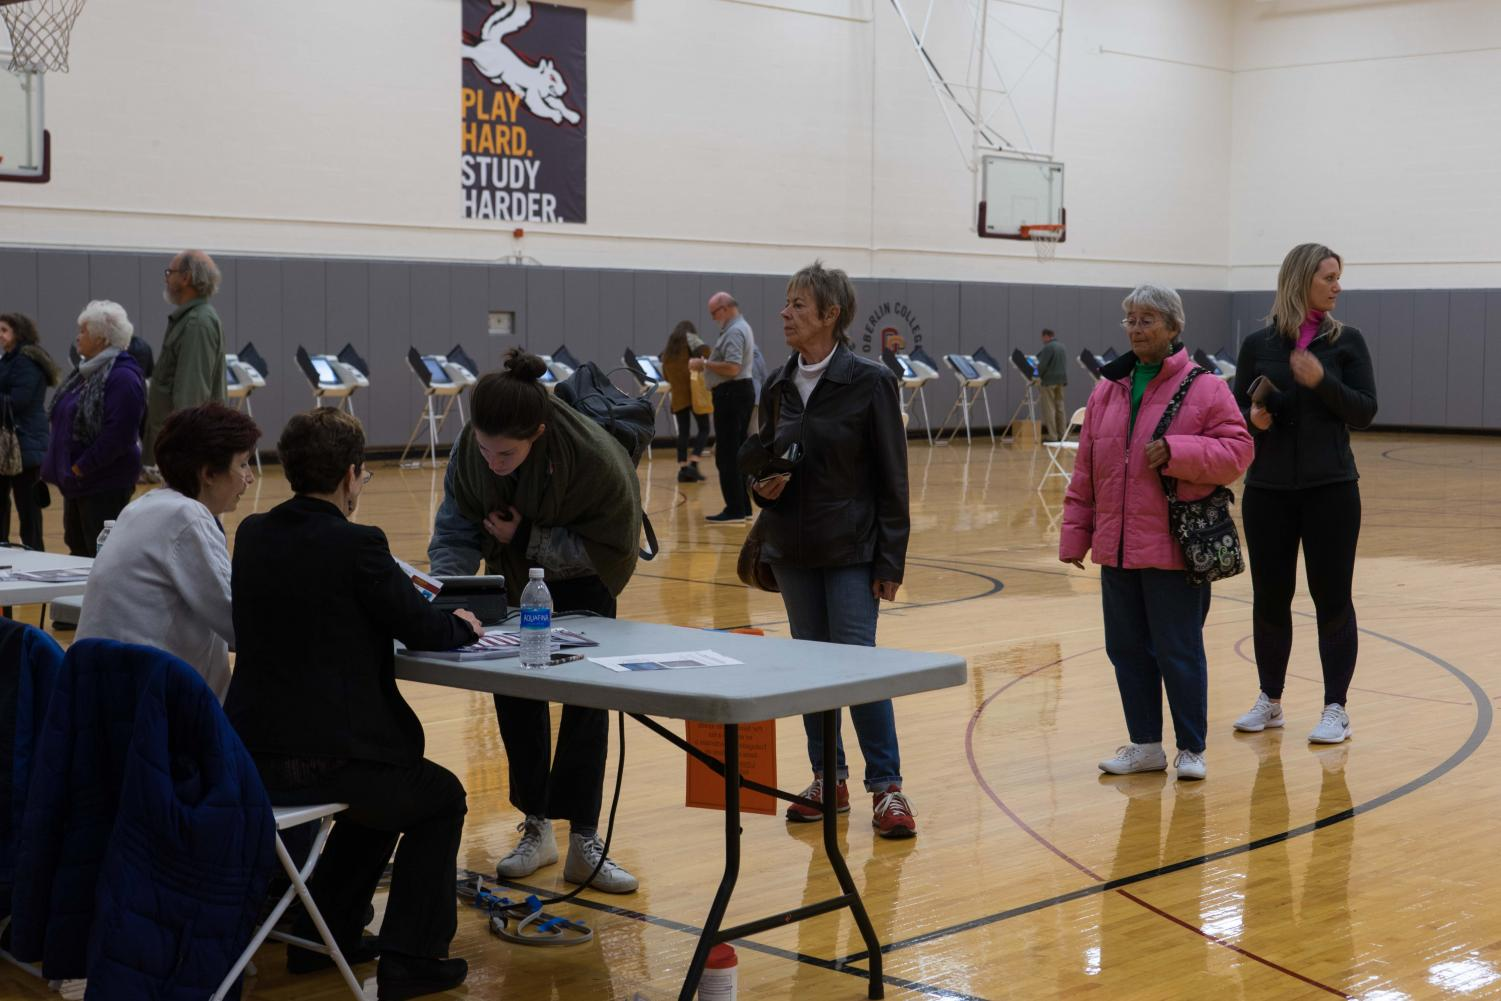 Oberlin students and residents vote in Tuesday's election in the auxiliary gym at Philips gym.